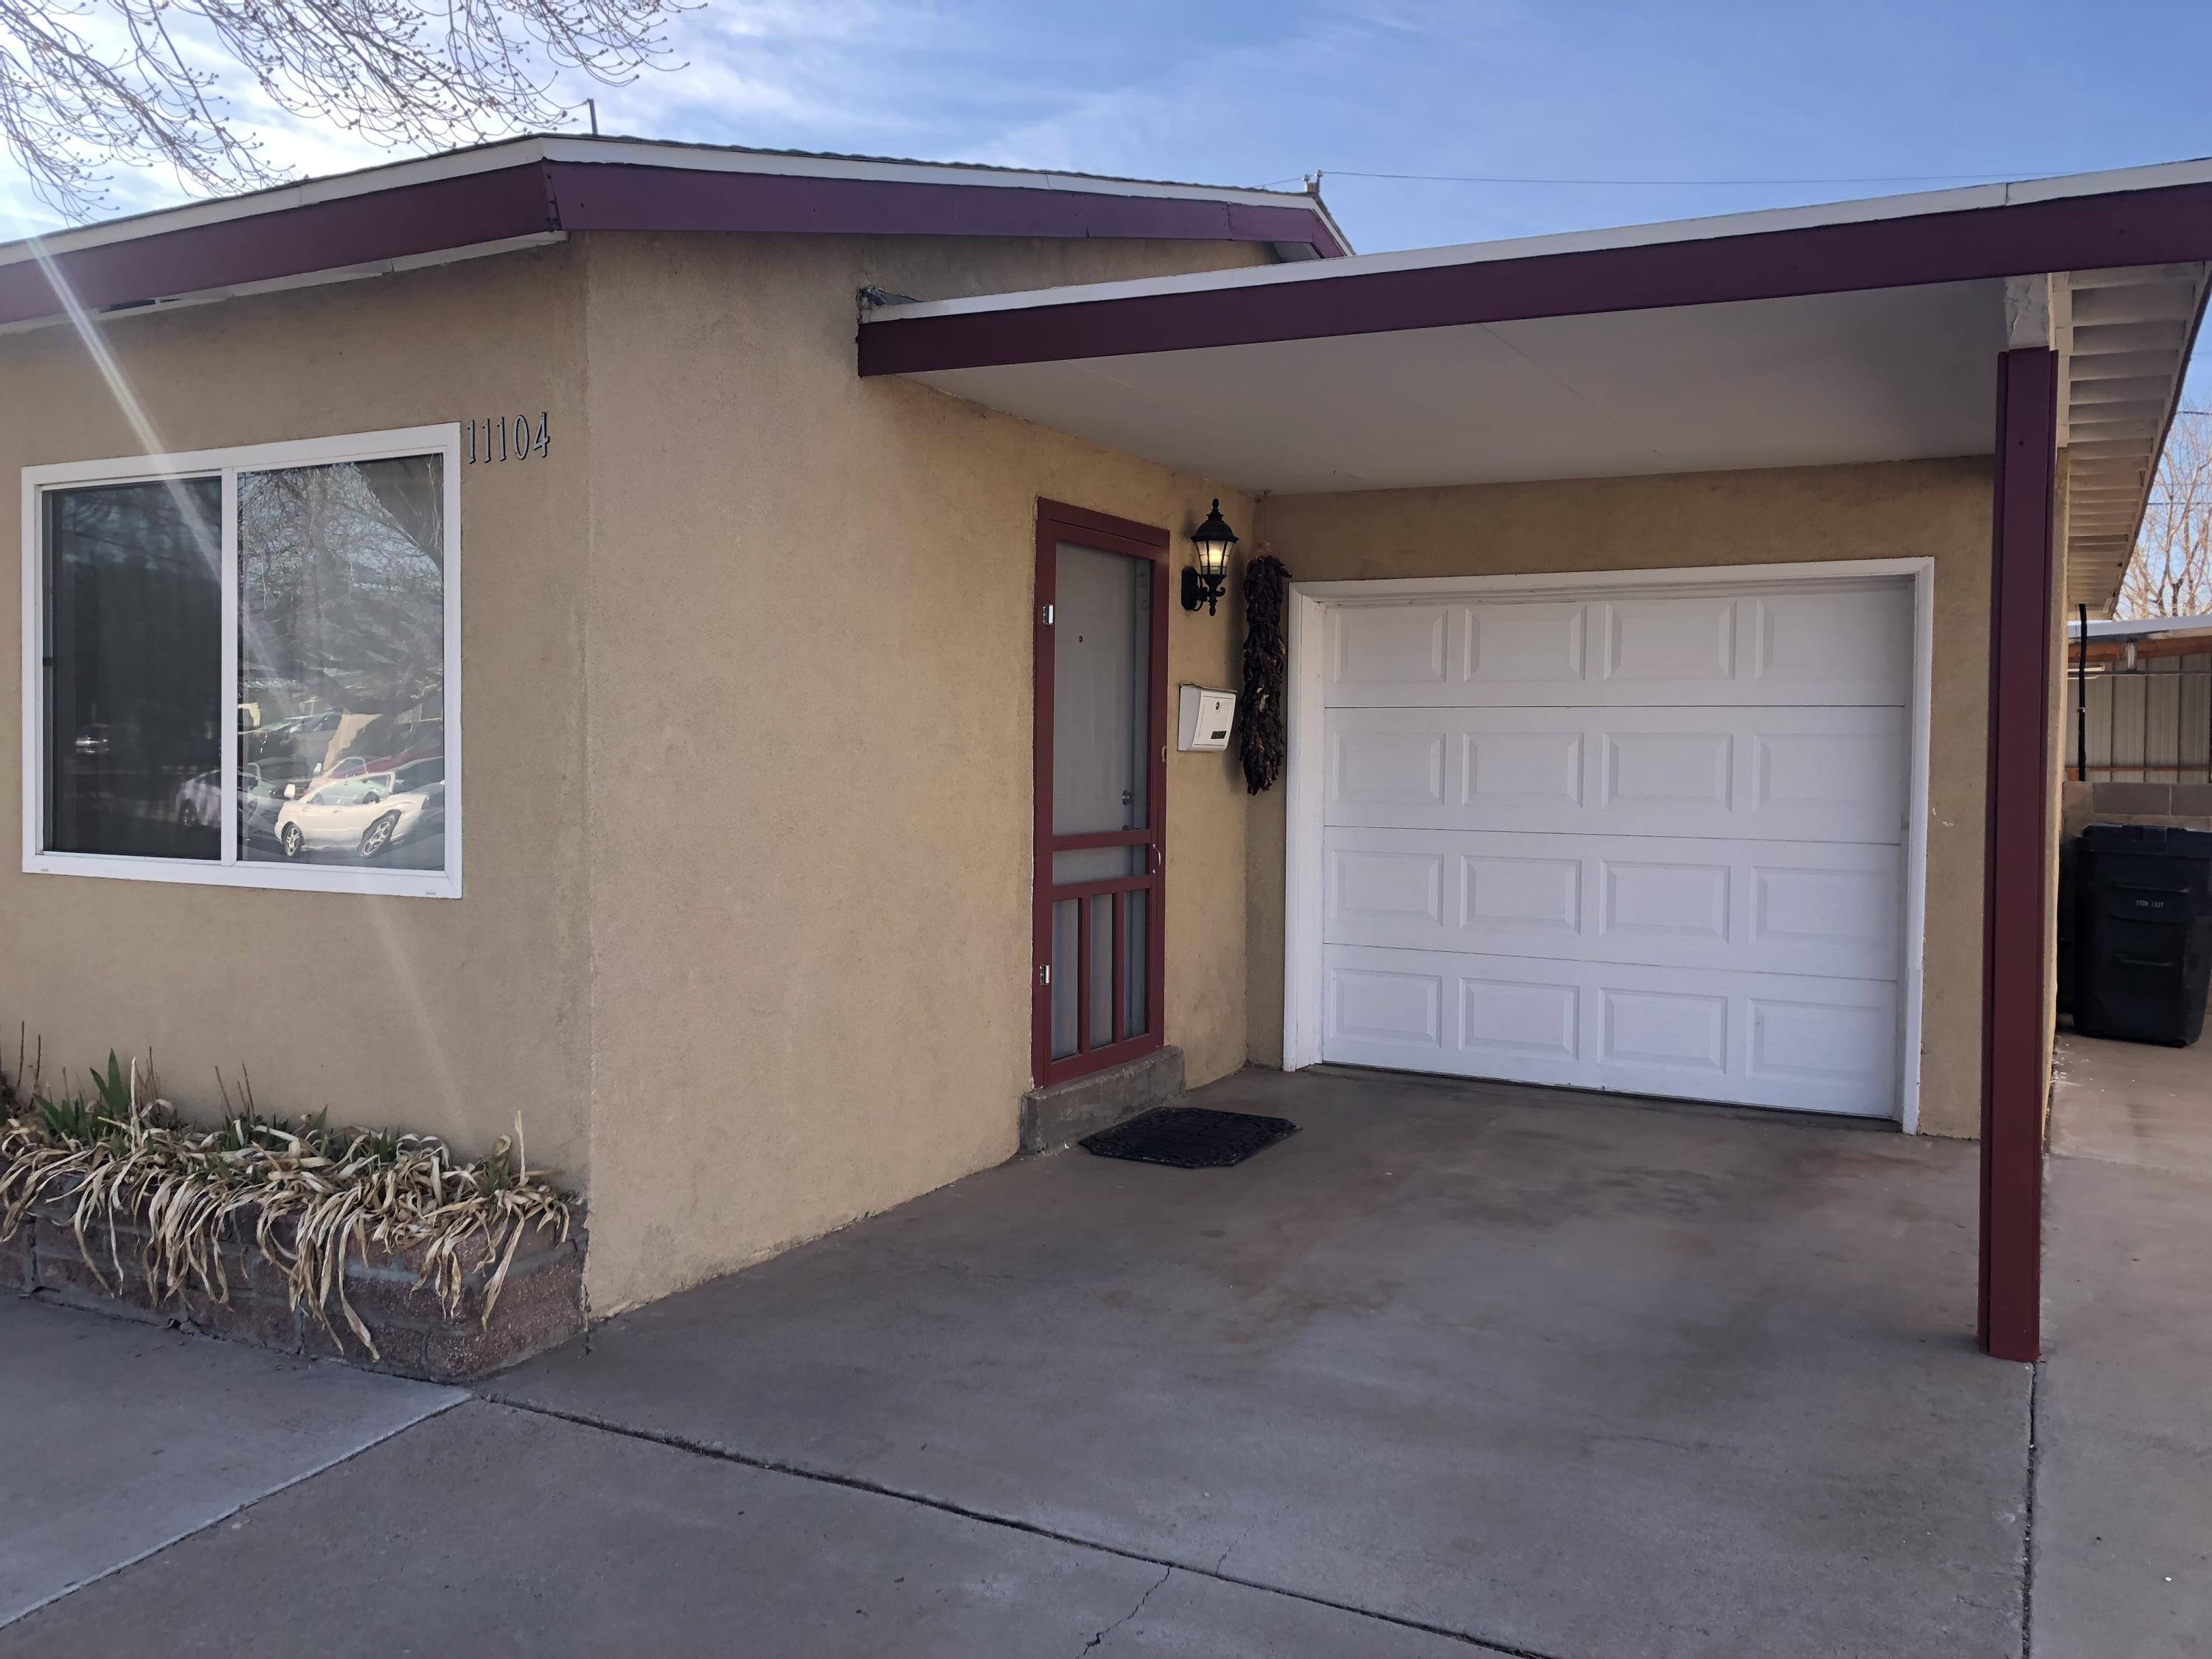 Great home ready for a new owner.  All clean and ready to go with Refrigerated Air, updated windows, floors, kitchen with concert counter tops, great gas stovetop and separate oven, updated bathroom, recessed lighting,  Property boasts large backyard with great covered patio with electricity and large storage shed that stays with the home.  Come take a look today will not last long.